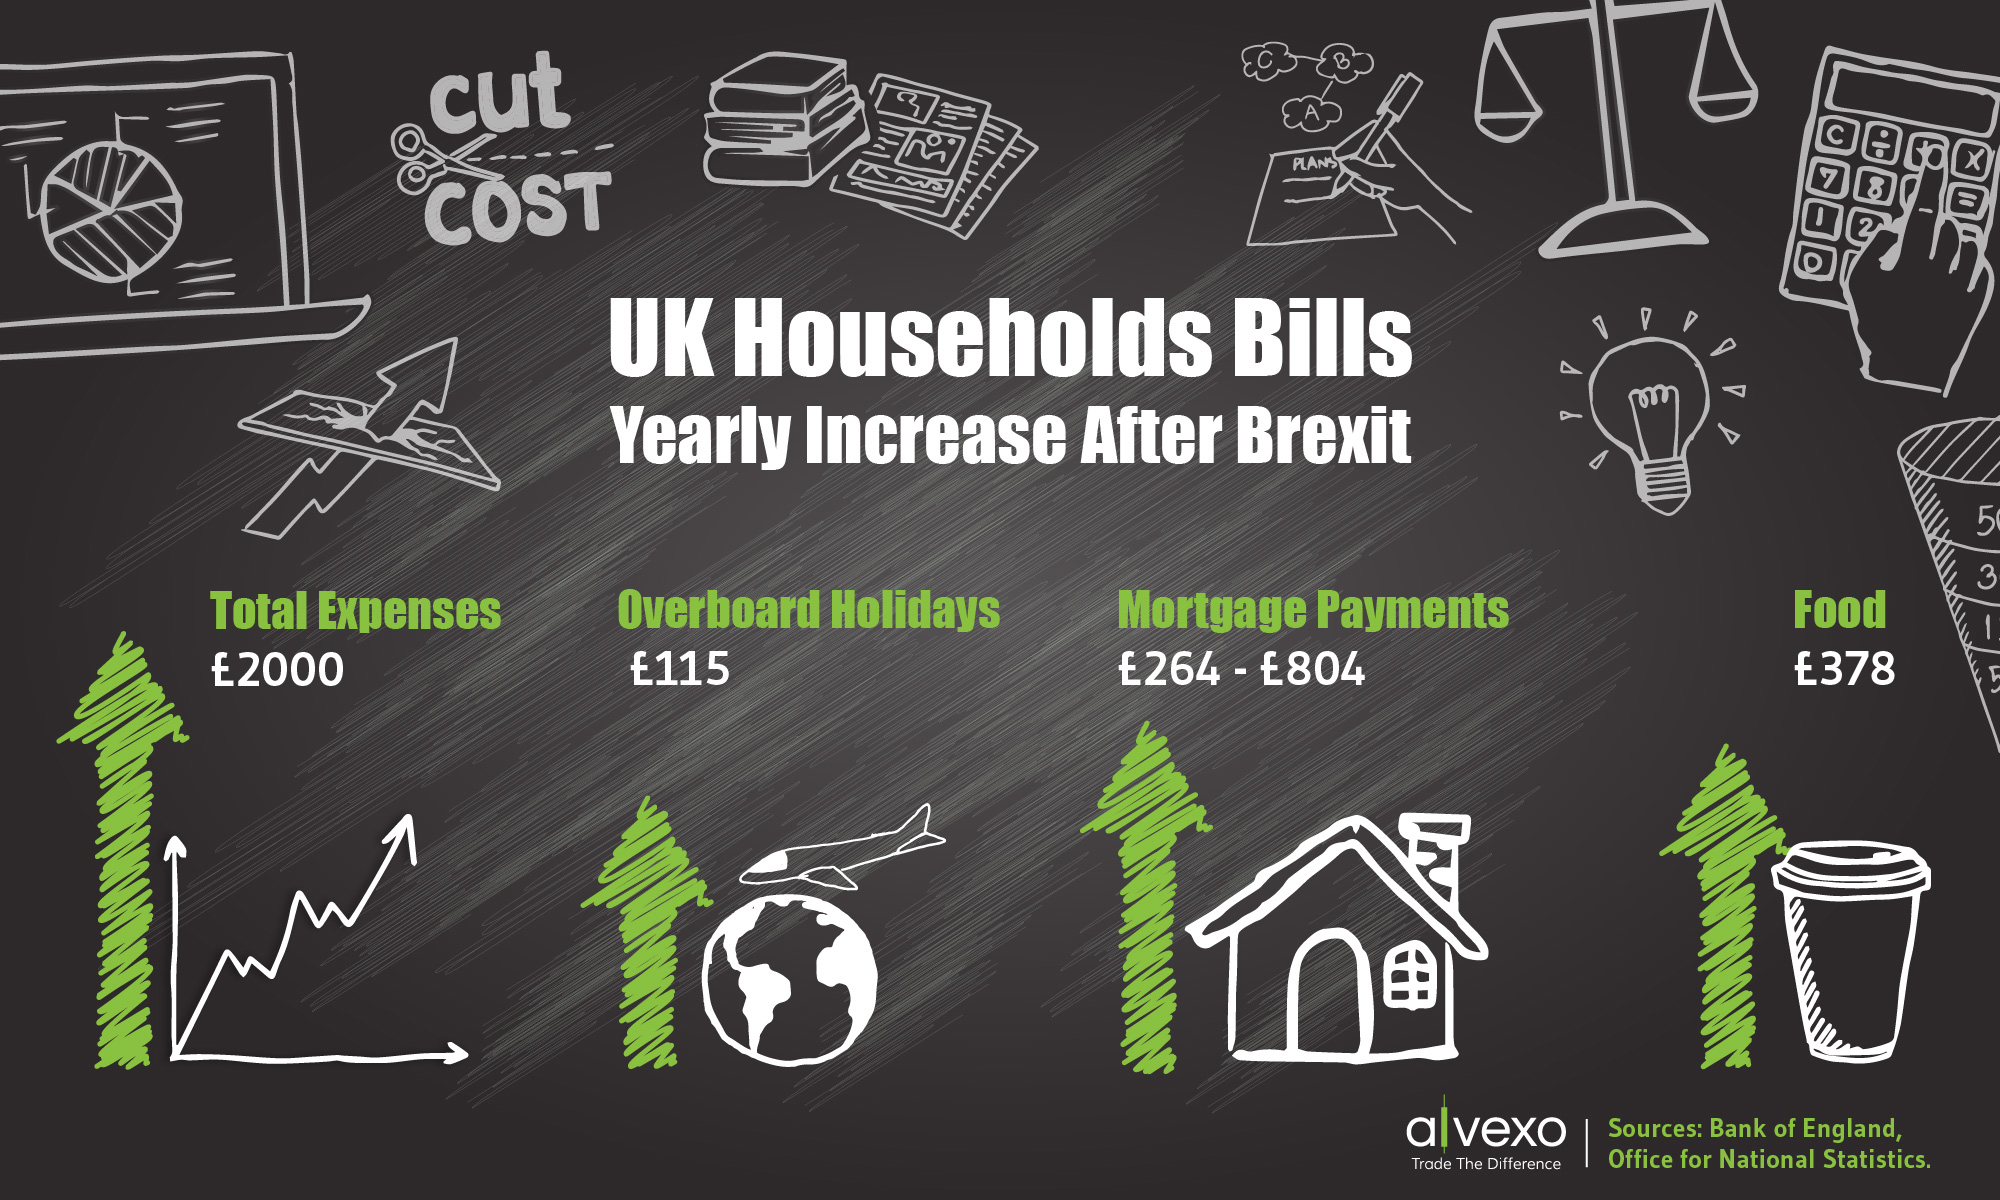 How much will household expenses increase in the UK after Brexit?